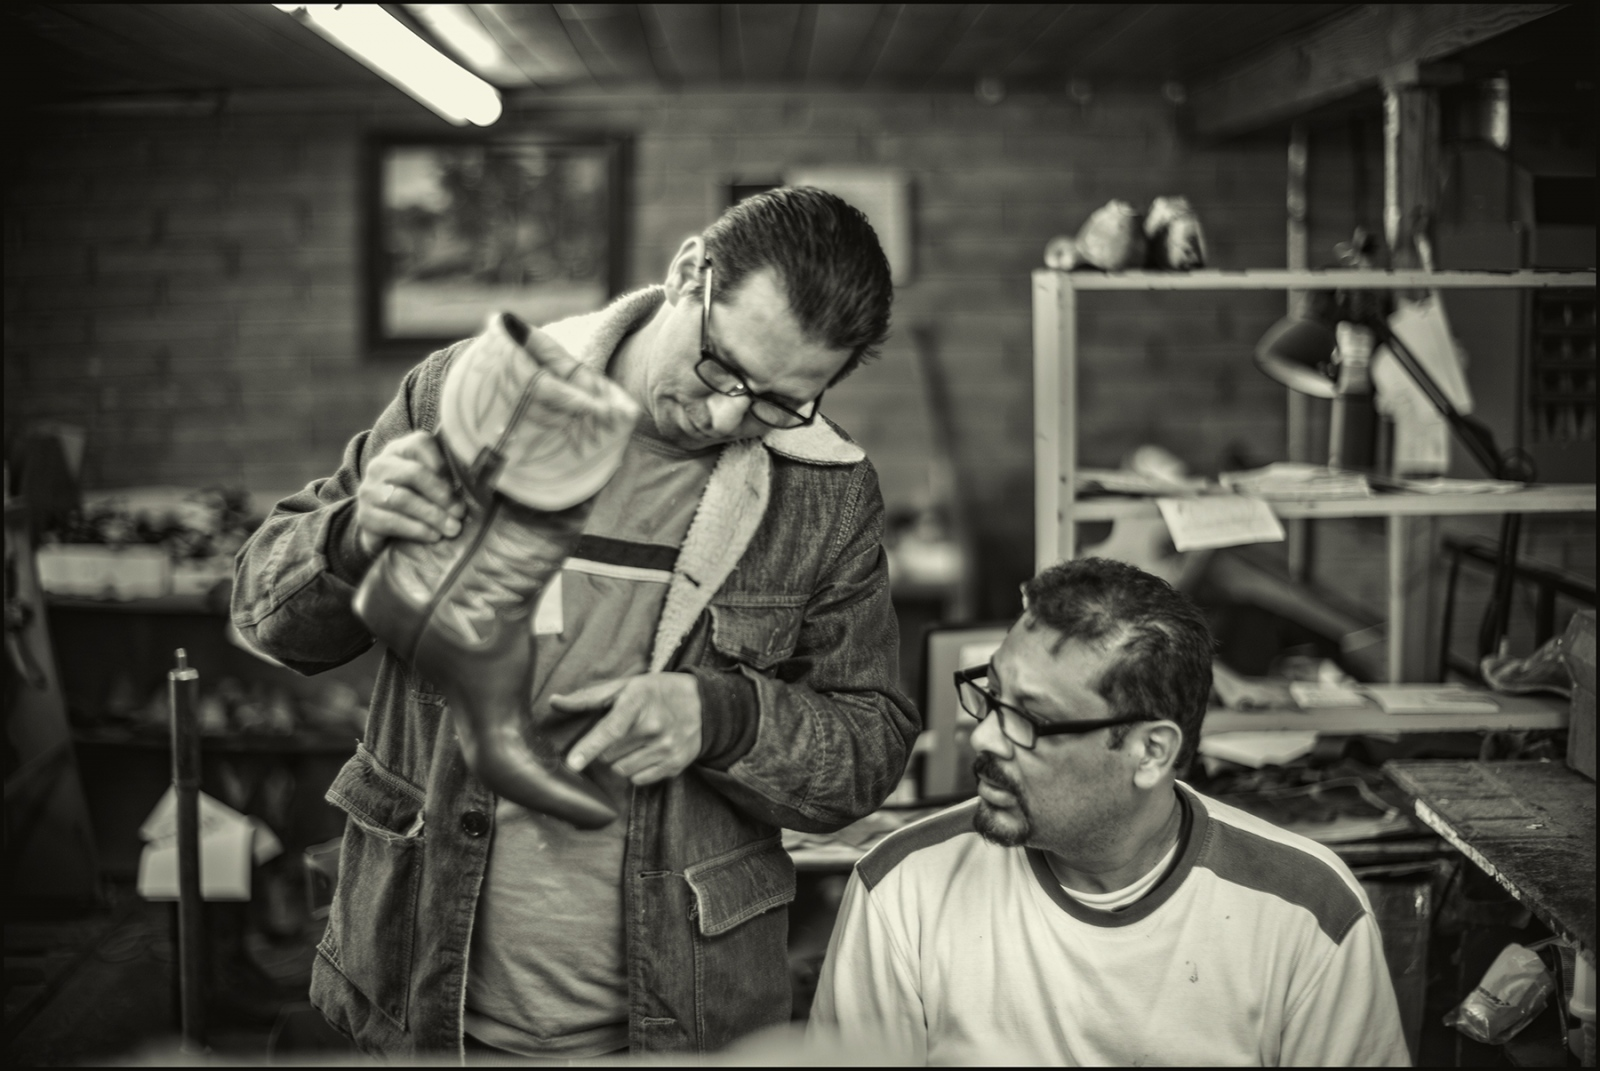 Juan eight years into his boot making career gives advice to Giovanni a second year boot artisan . Paul Bond Boot Company, Nogales, Arizona. February 2019.